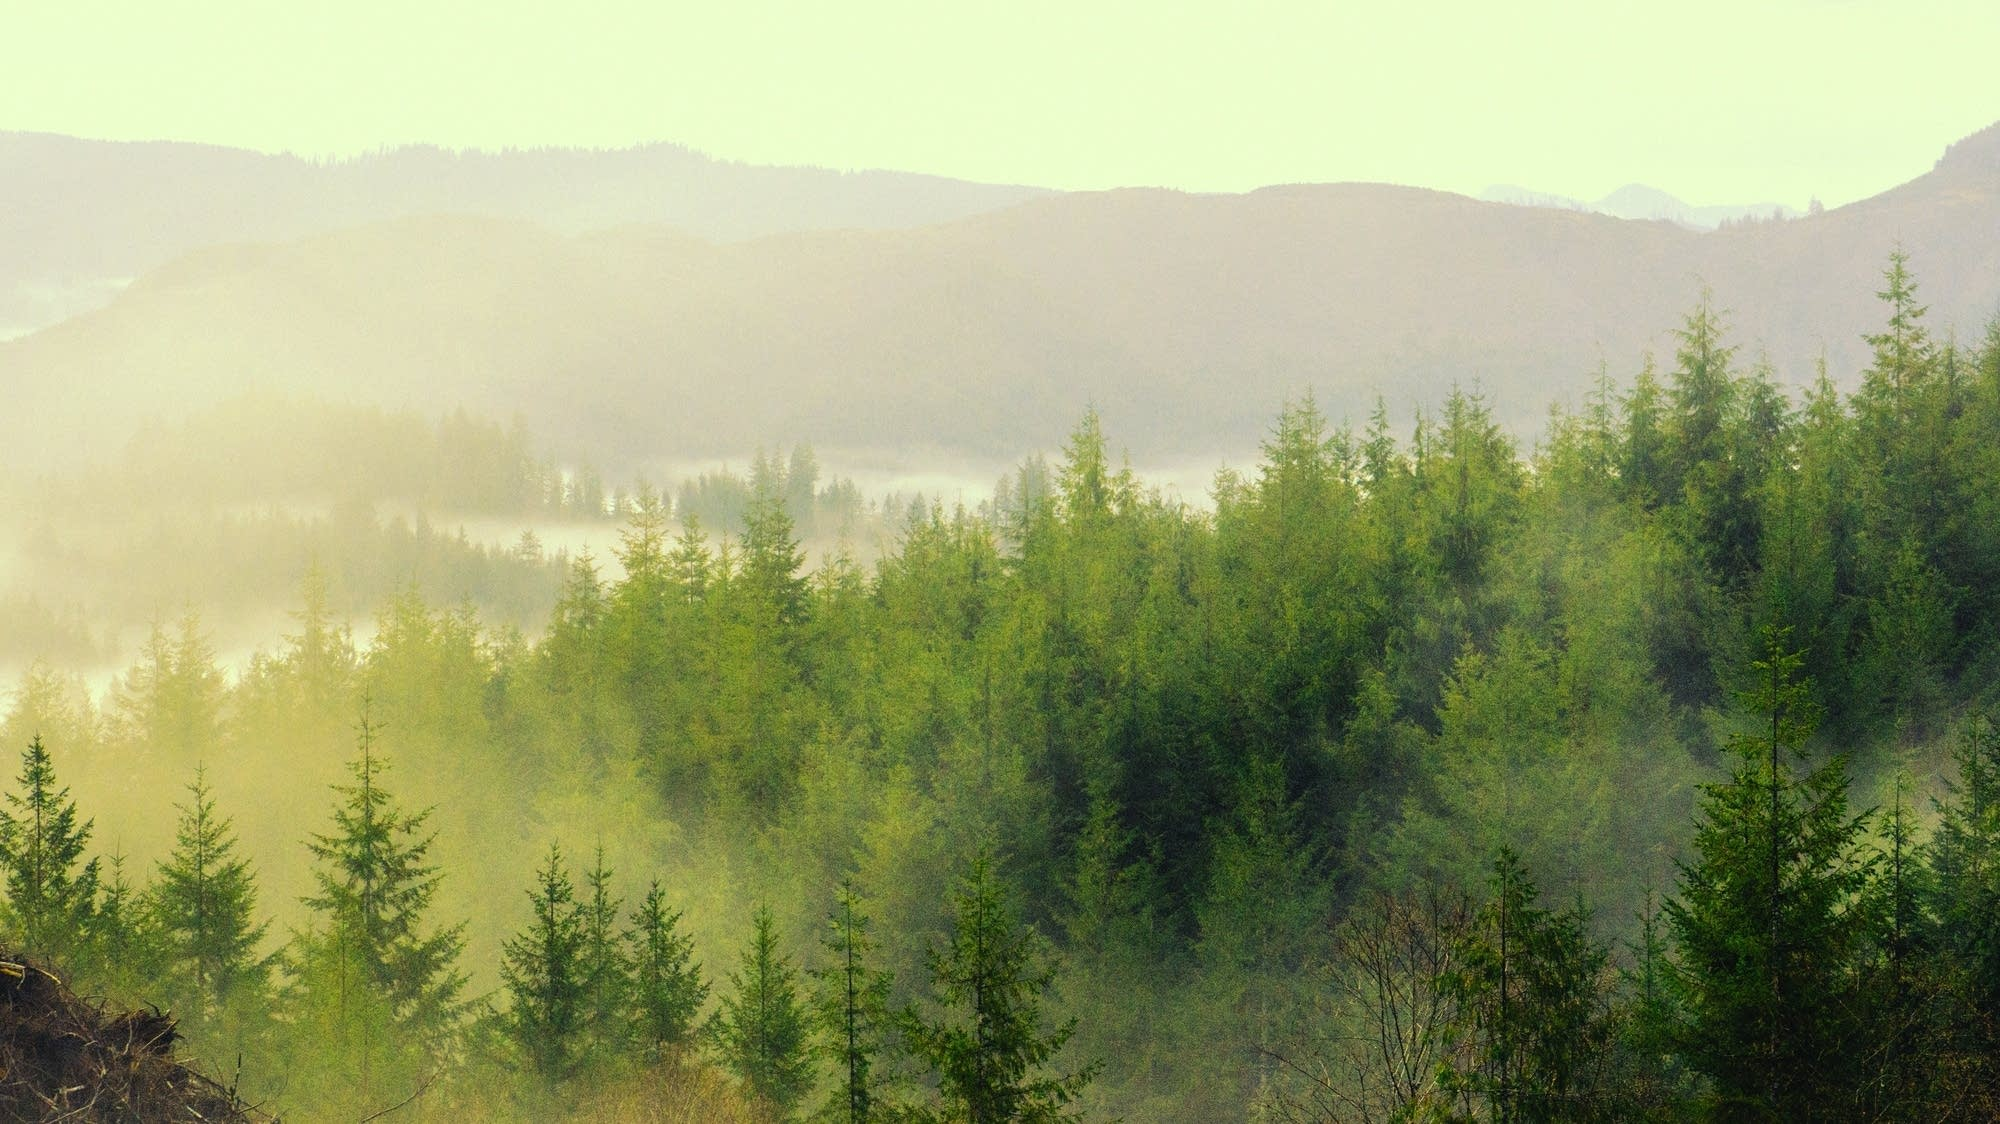 Mist hangs over a forest in Oregon.